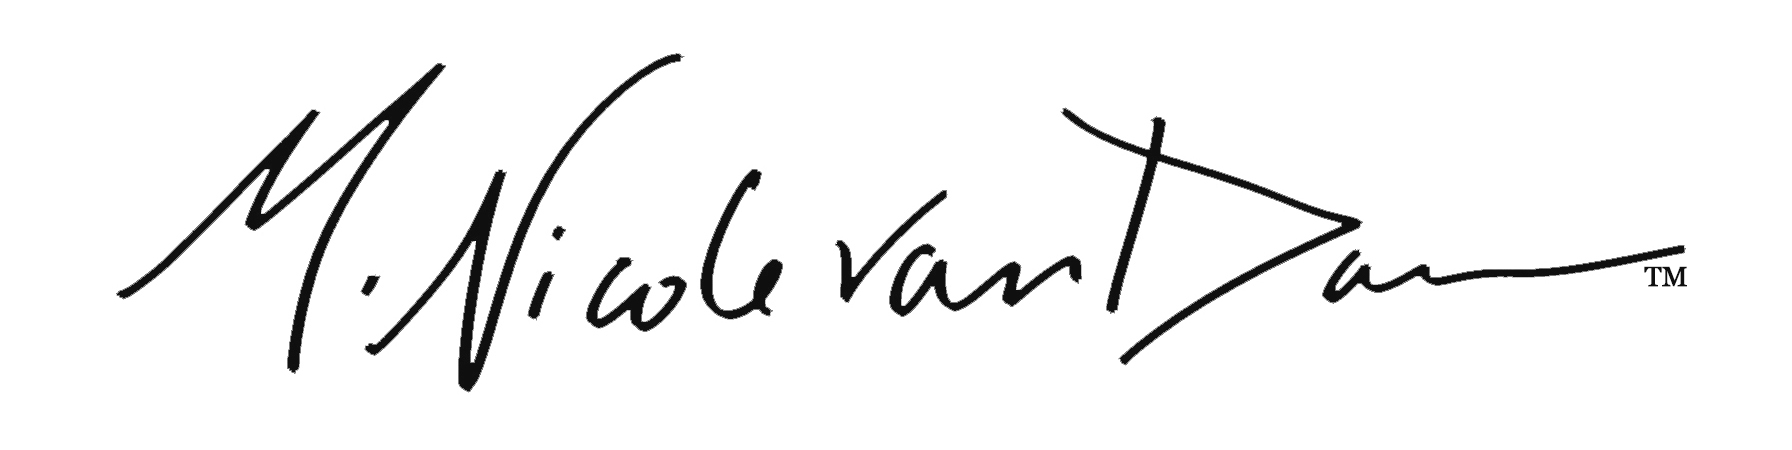 M.N<small>icole van </small>D<small>am</small>'s Signature